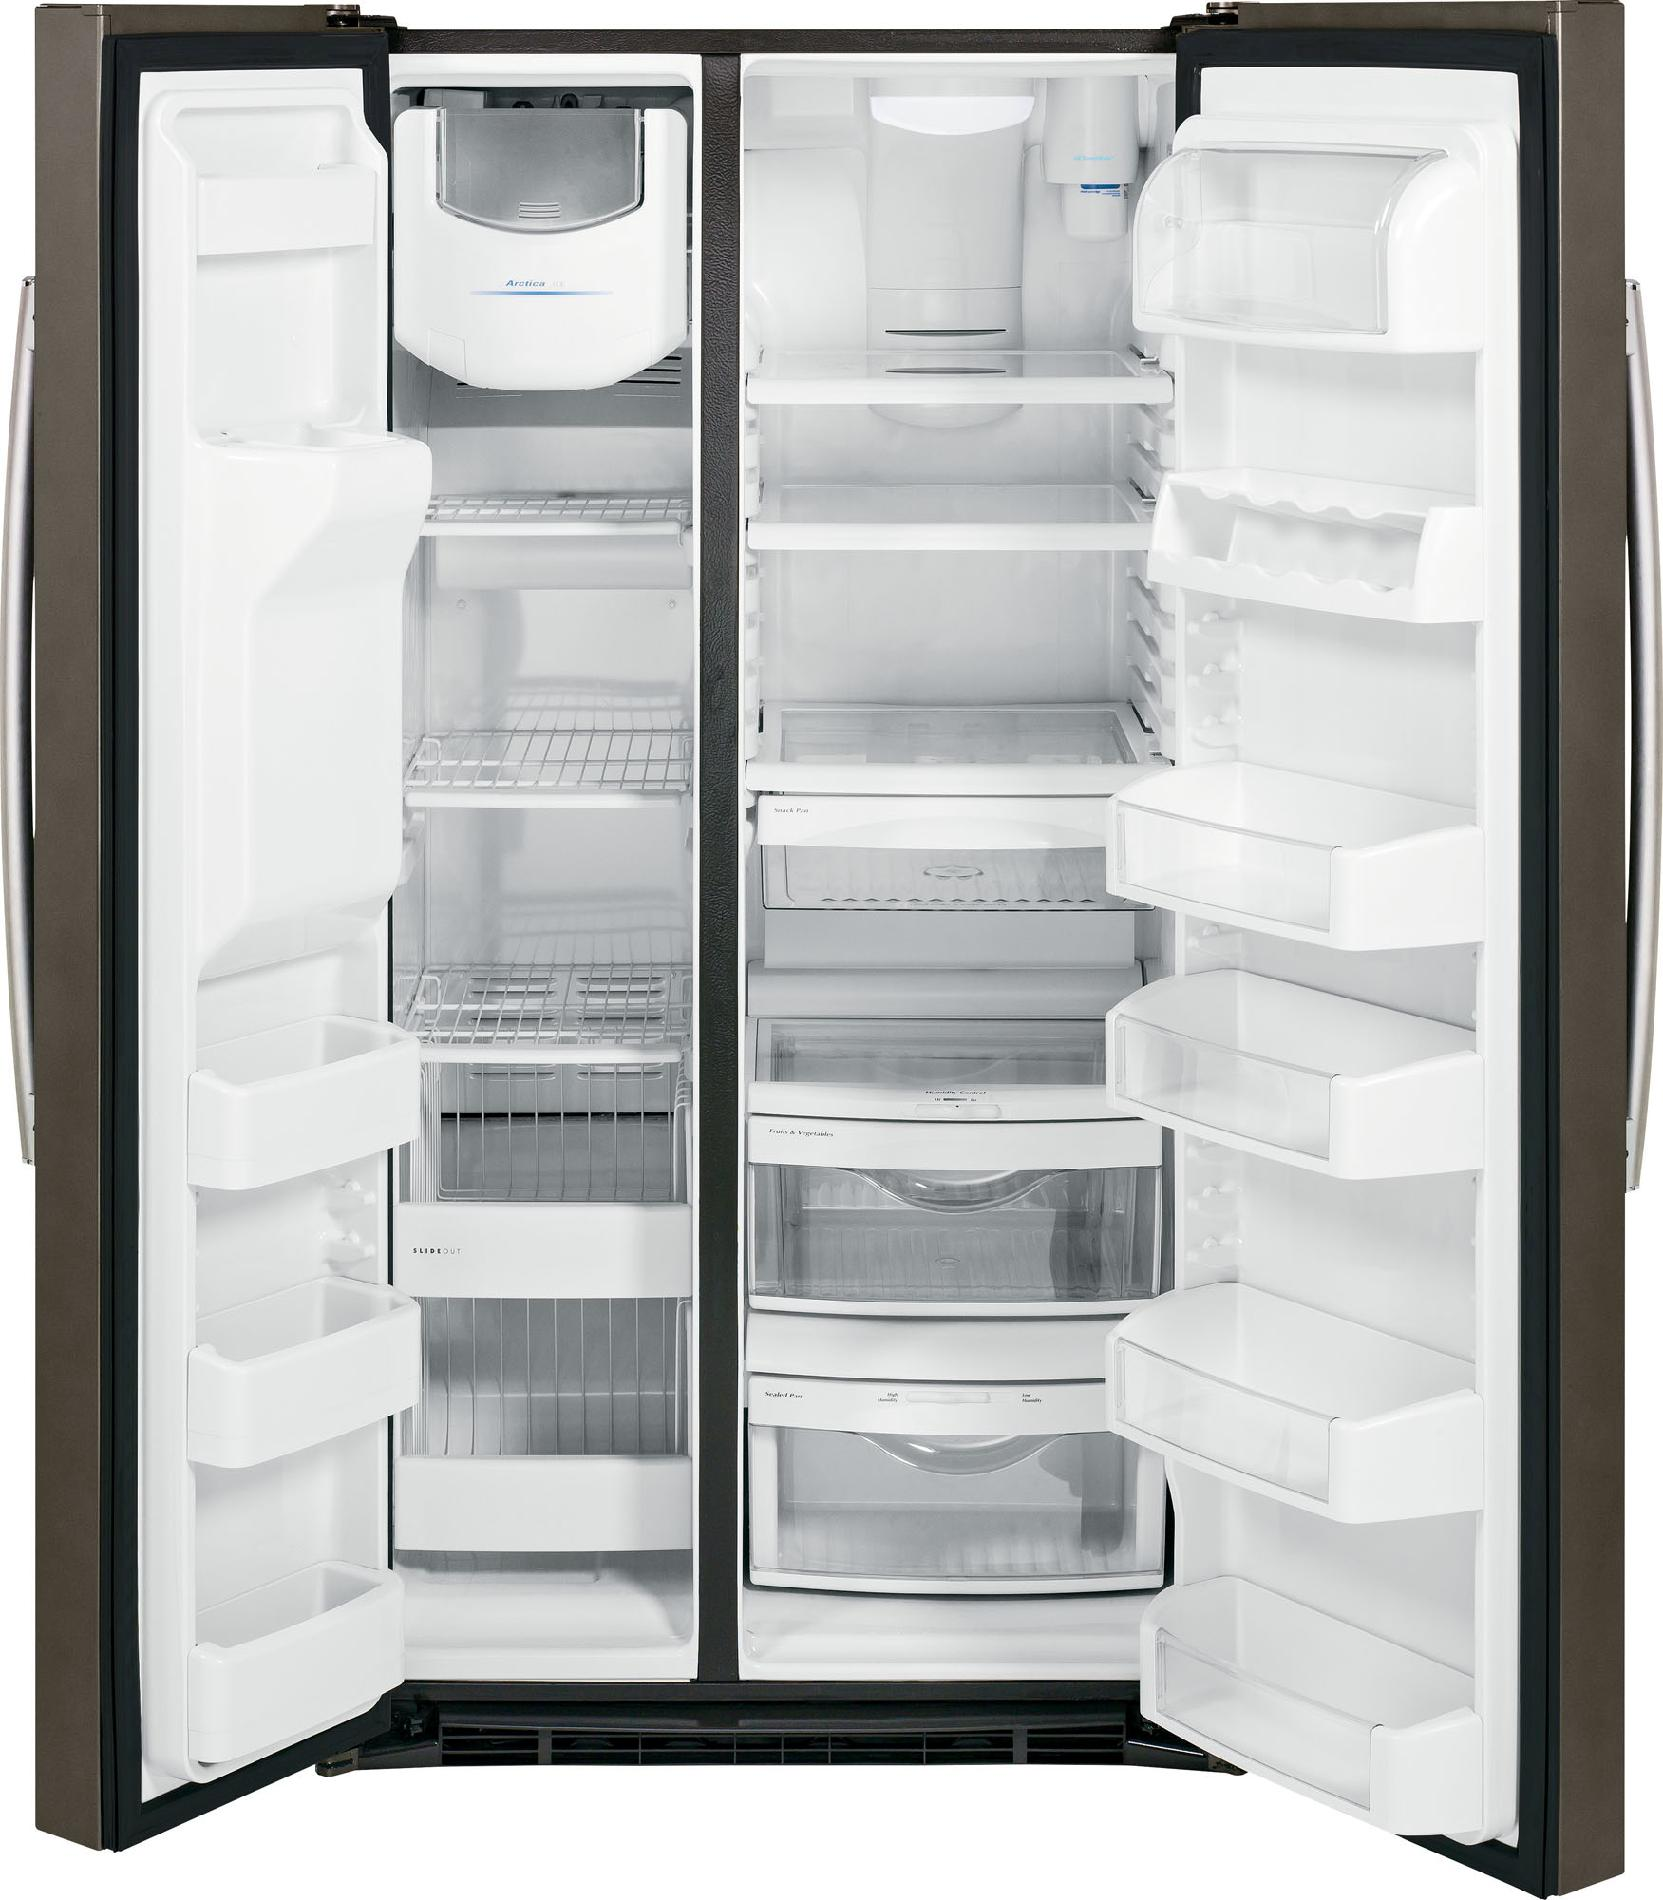 GE 25.9 cu. ft. Side-by-Side Refrigerator w/ Dispenser - Slate